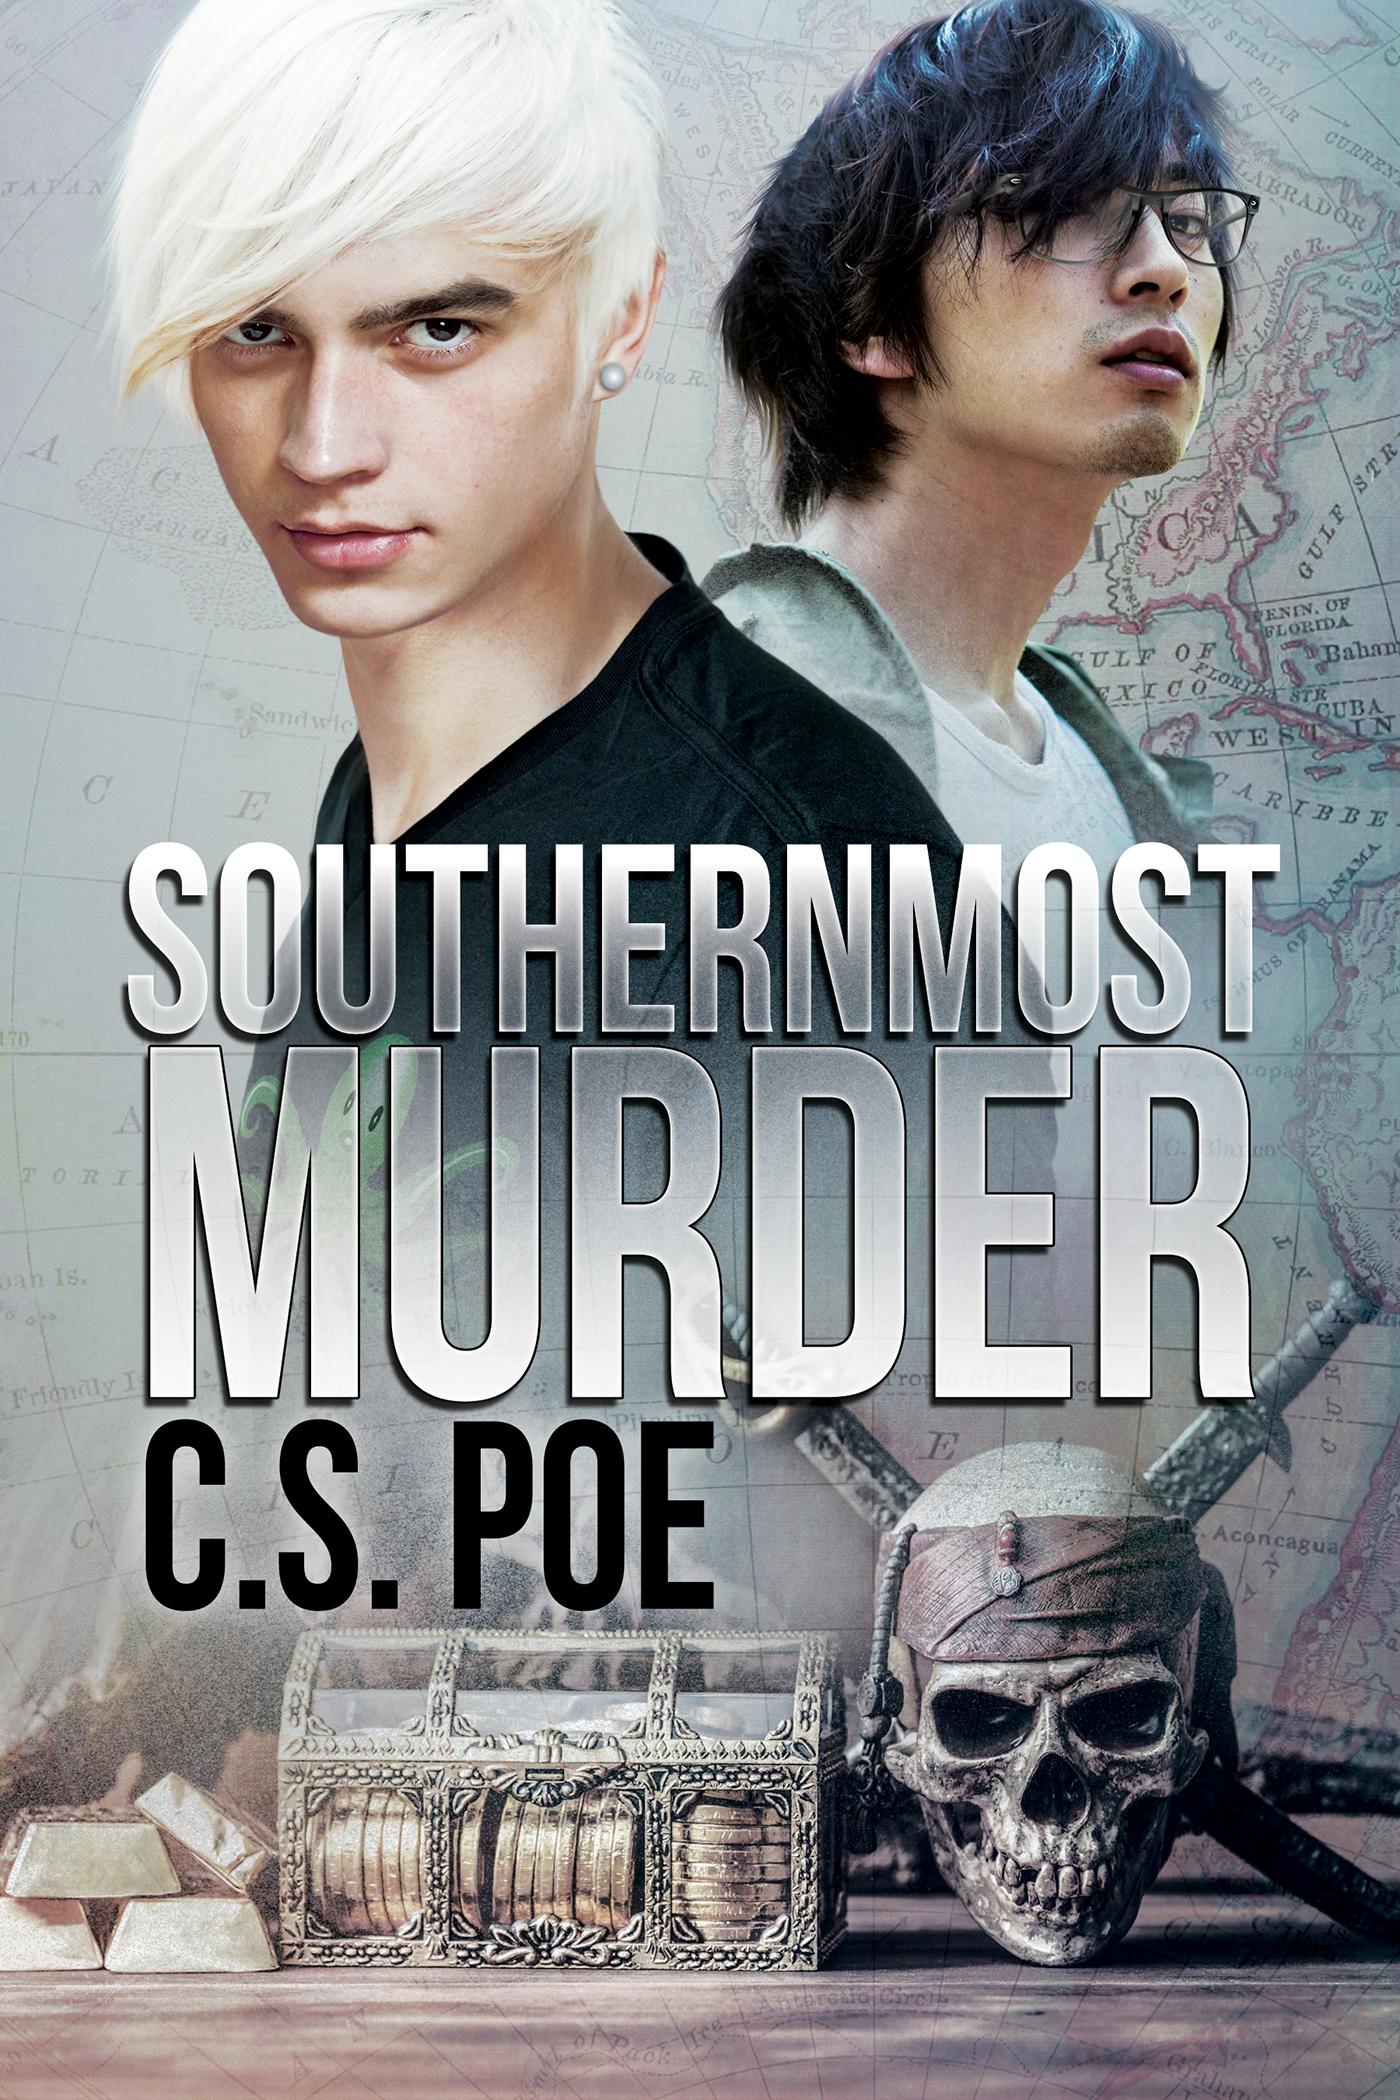 Guest Post and Giveaway: Southernmost Murder by C.S. Poe